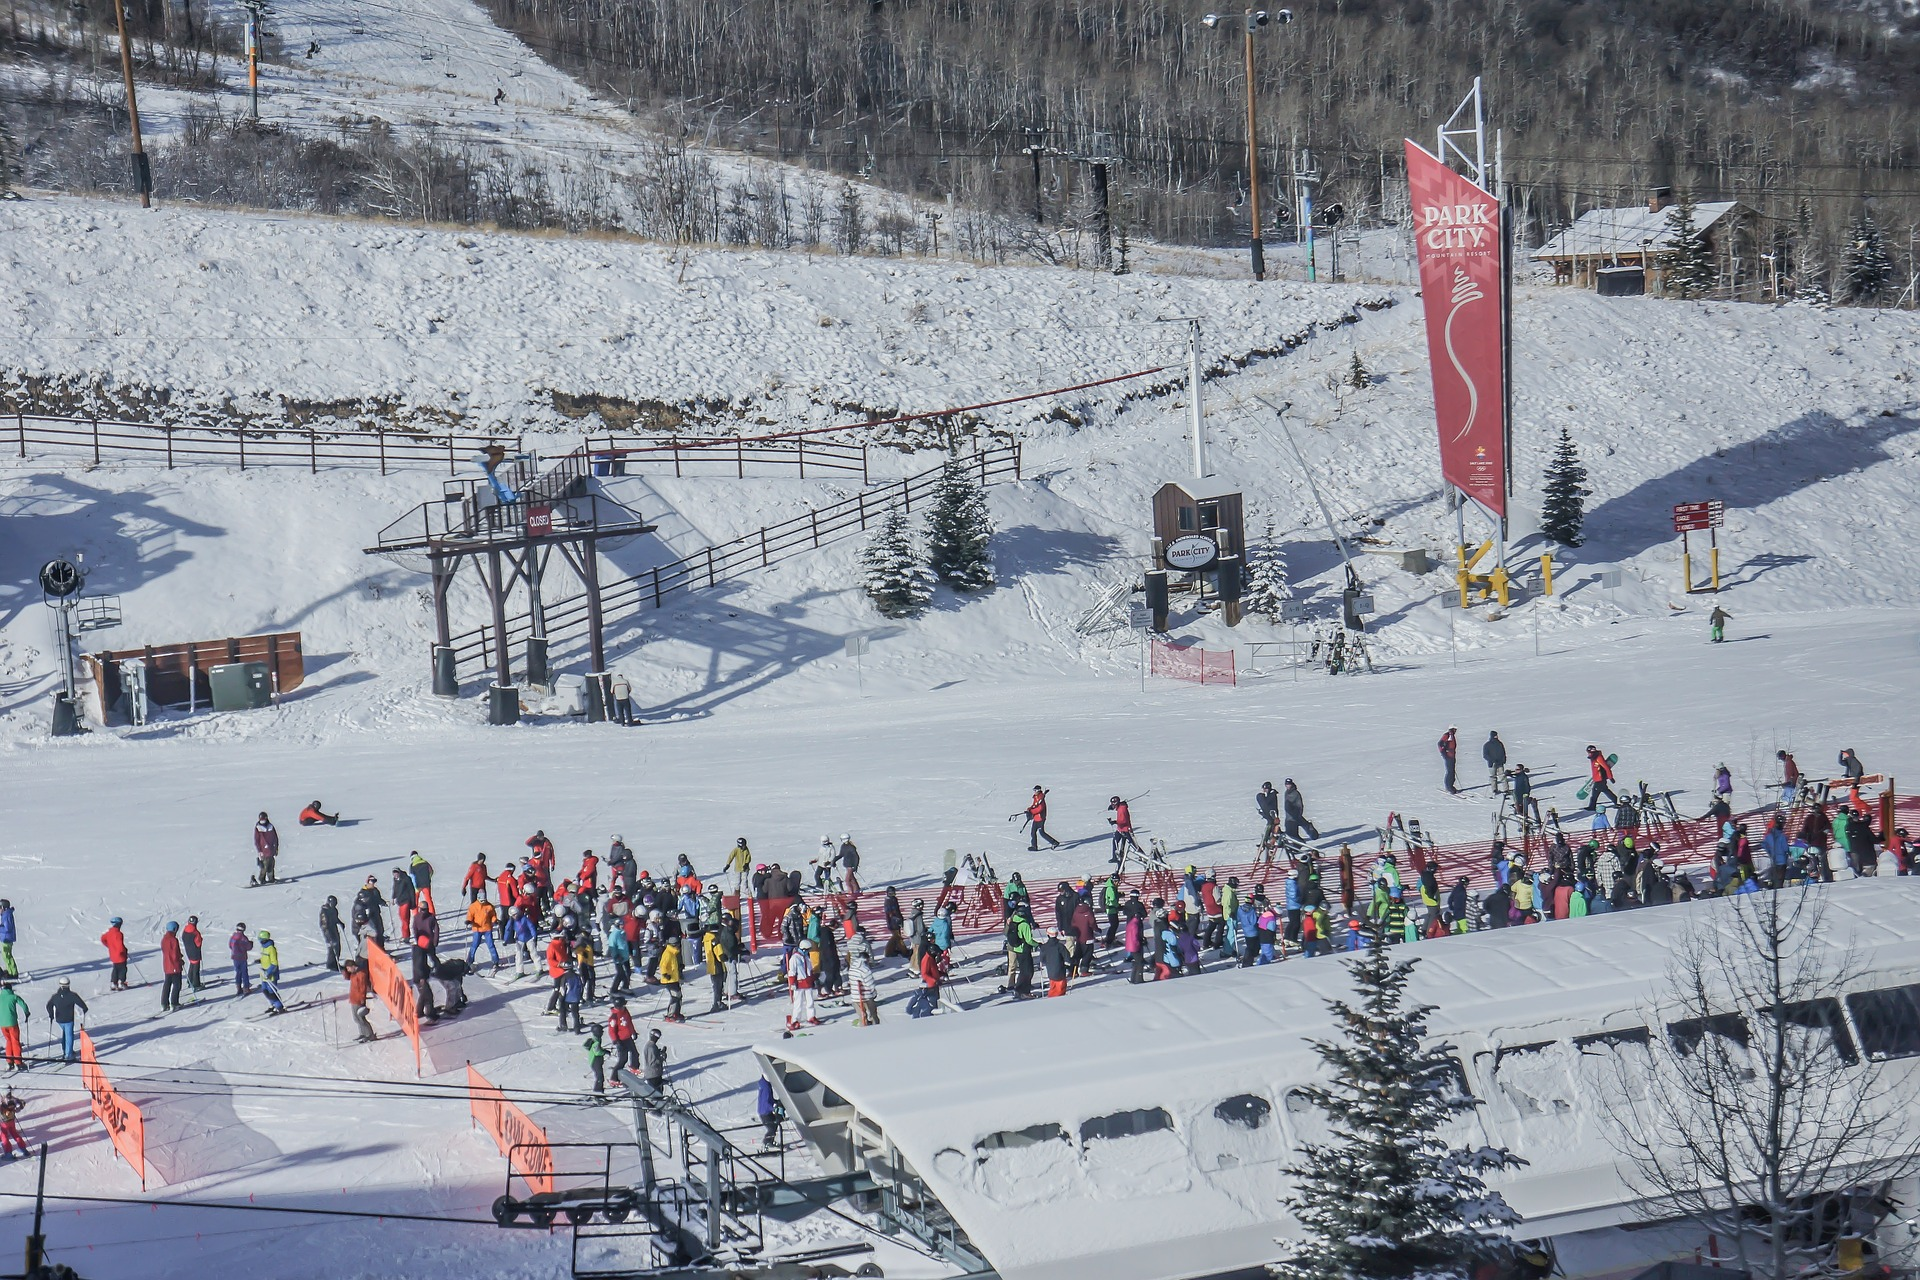 Park City, Utah - Places to Visit During the Holidays